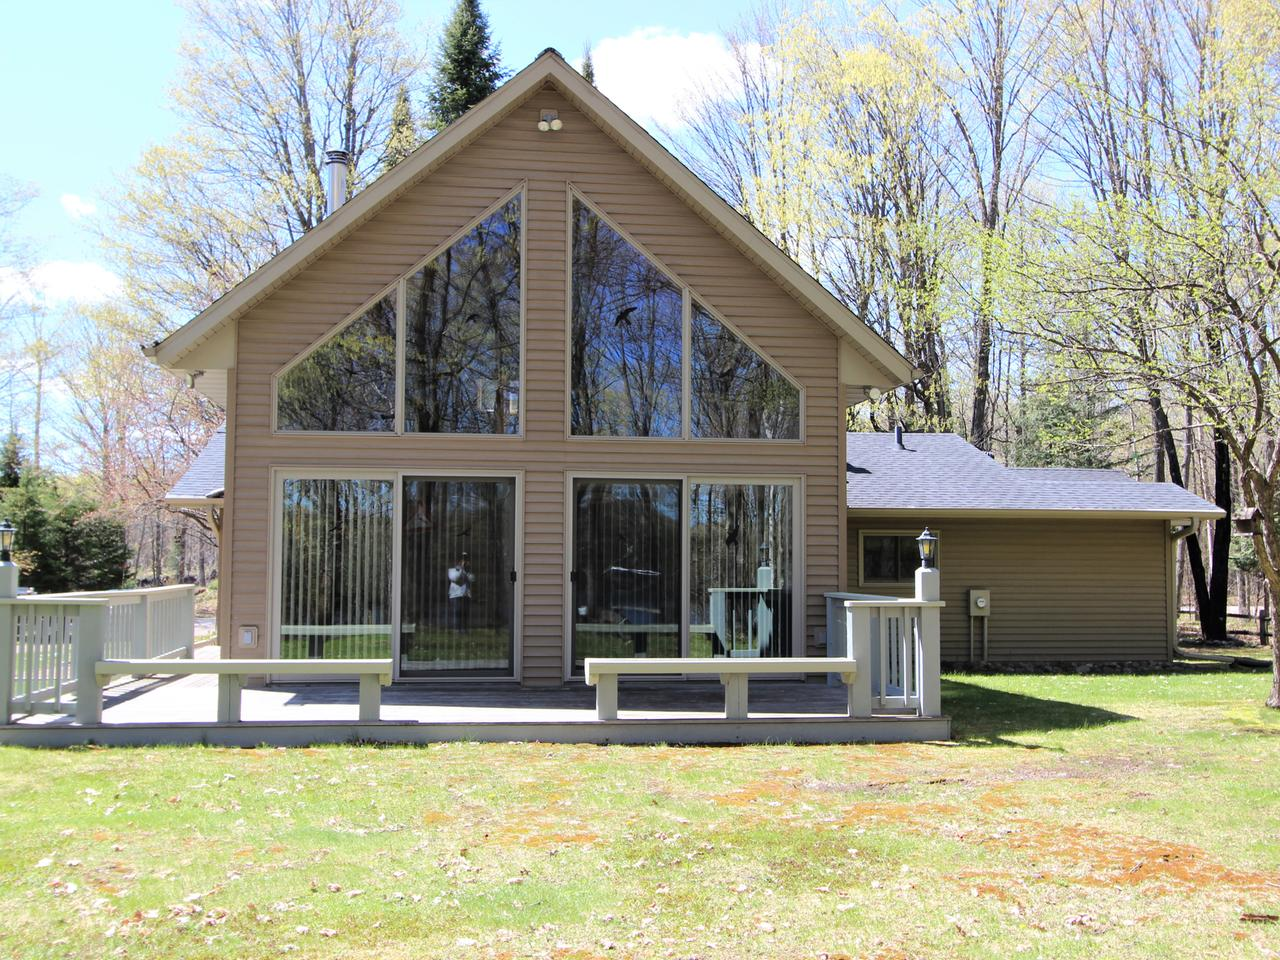 "Premier home in the heart of the true Northwoods. This home features cathedral ceilings, chalet style home with a wall of windows facing the lake. Northwoods decor and knotty pine throughout keeps the home bright and light. The great room features a free-standing field stone fireplace. The views from the loft are awesome and supplement the additional 3 bedrooms and 2 baths. Crystal clear water, prime fishing and the ability to boat both Little Hurst and Big Hurst Lake is a rare combination. The exterior is maintenance free and the over sized two car garage is insulated and heated with substantial additional storage attached to the rear. This is one our most sought-after areas with destination bike trails and snowmobile trails at your fingertips. Location, quality and value make this home a ""must see!"""